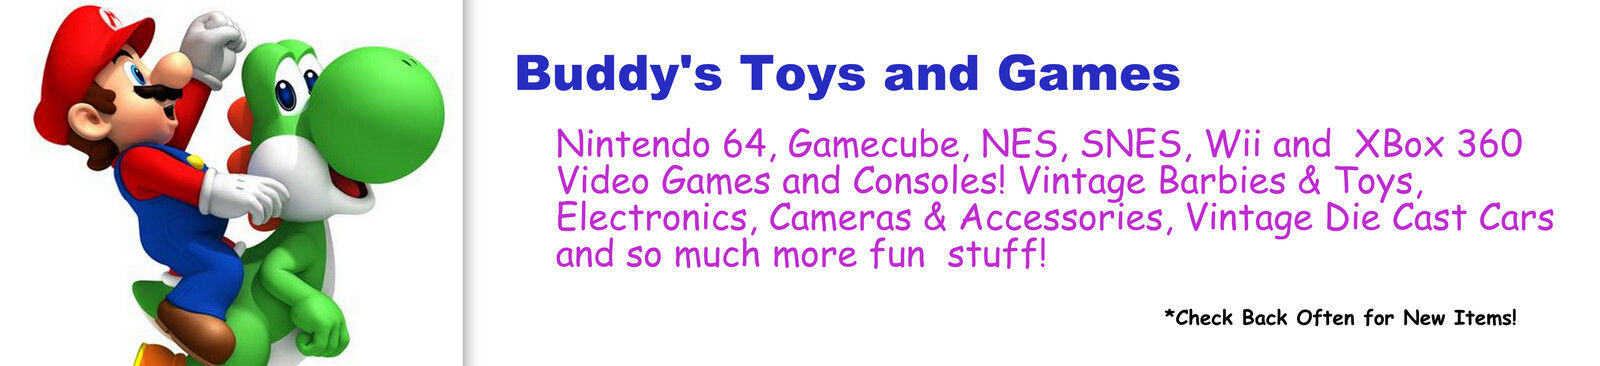 Buddys Toys and Games